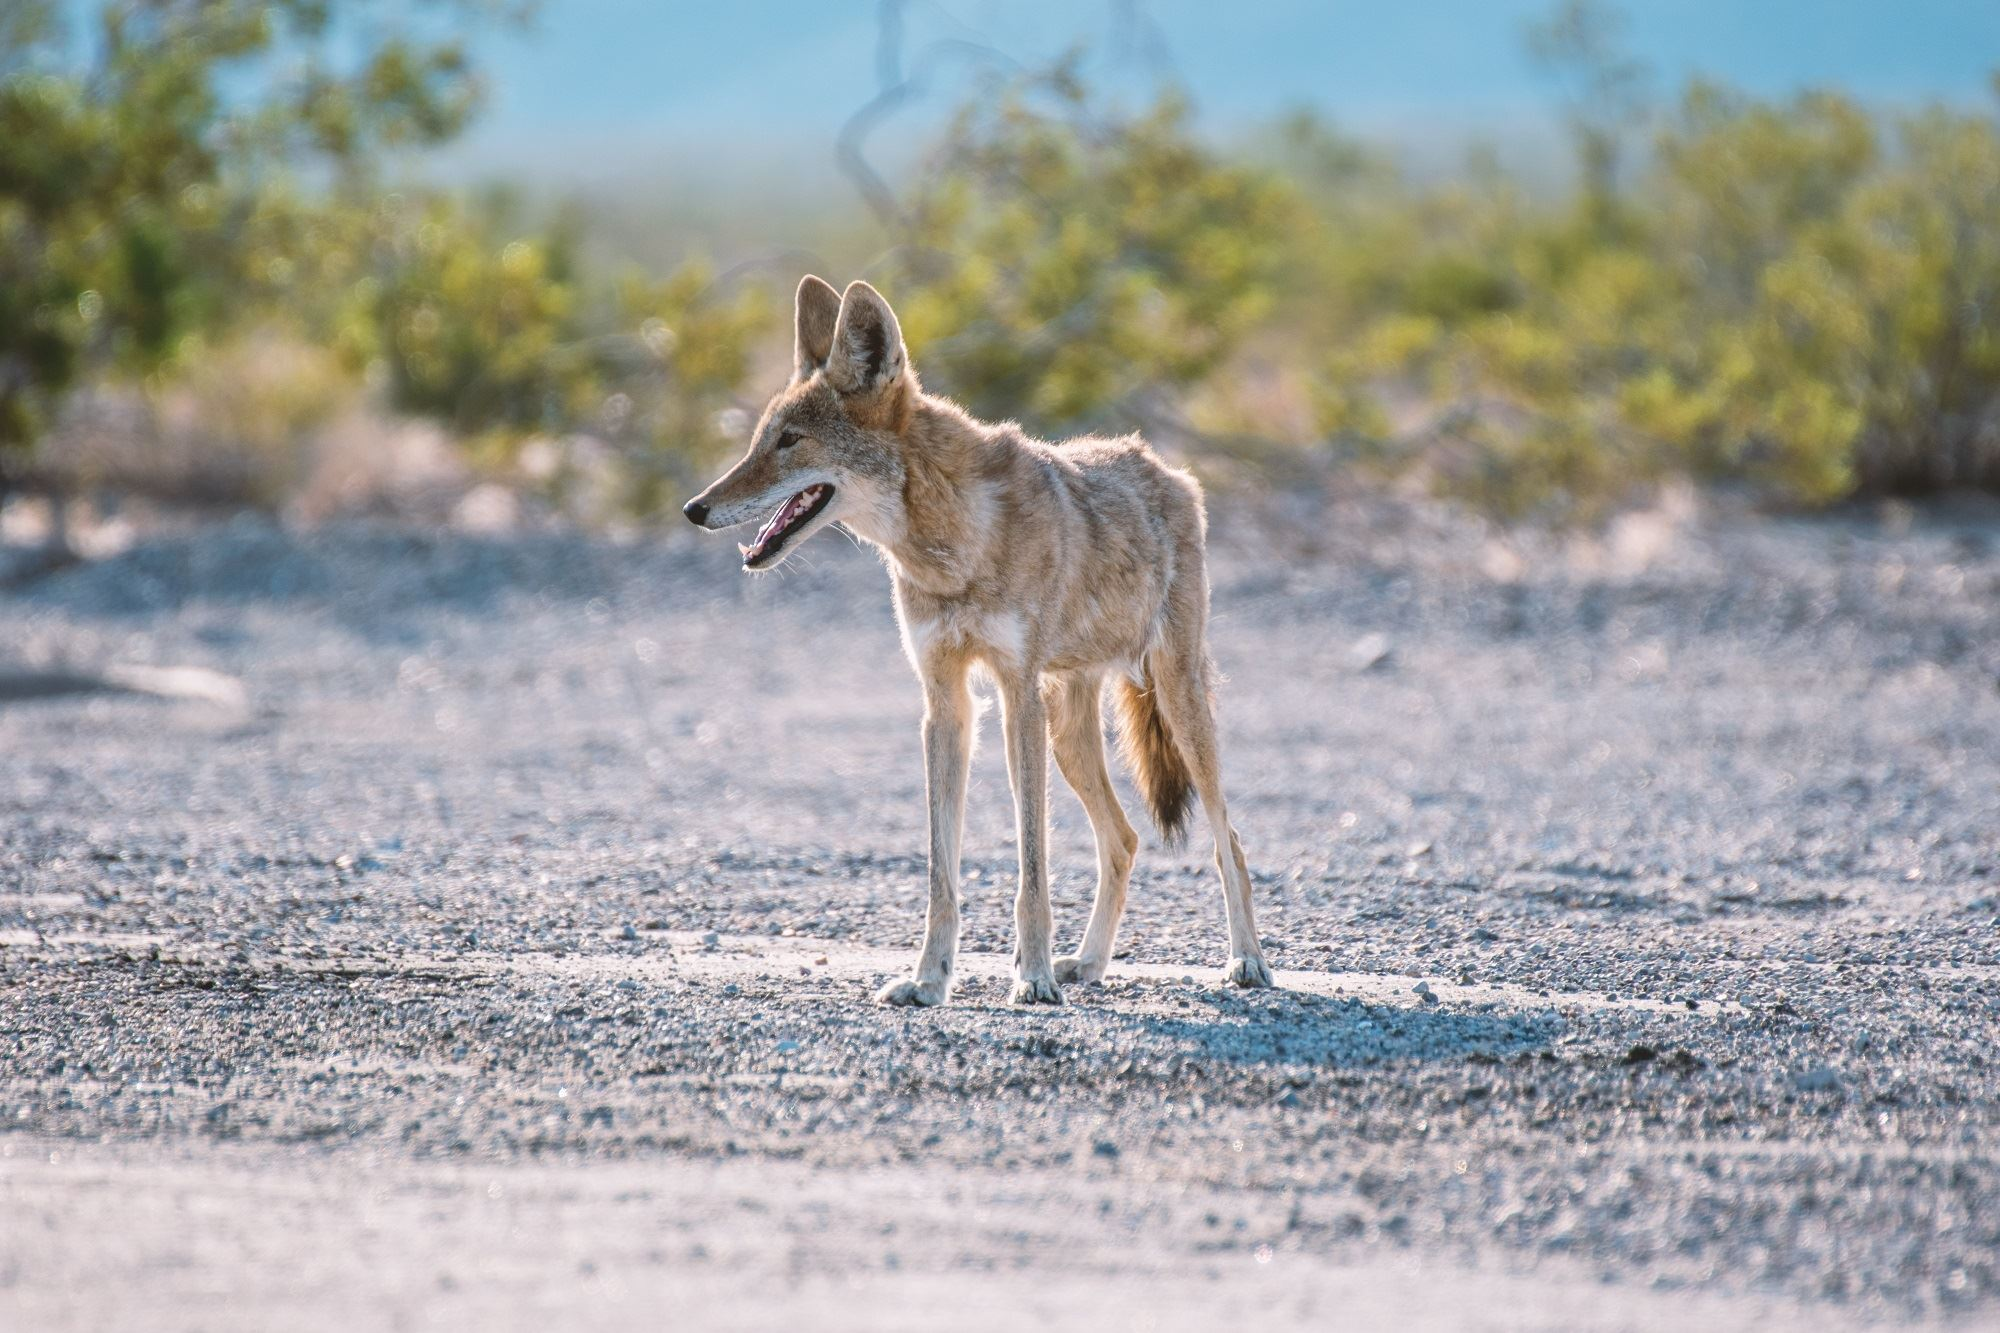 City Council to review San Gabriel's Coyote Management Plan